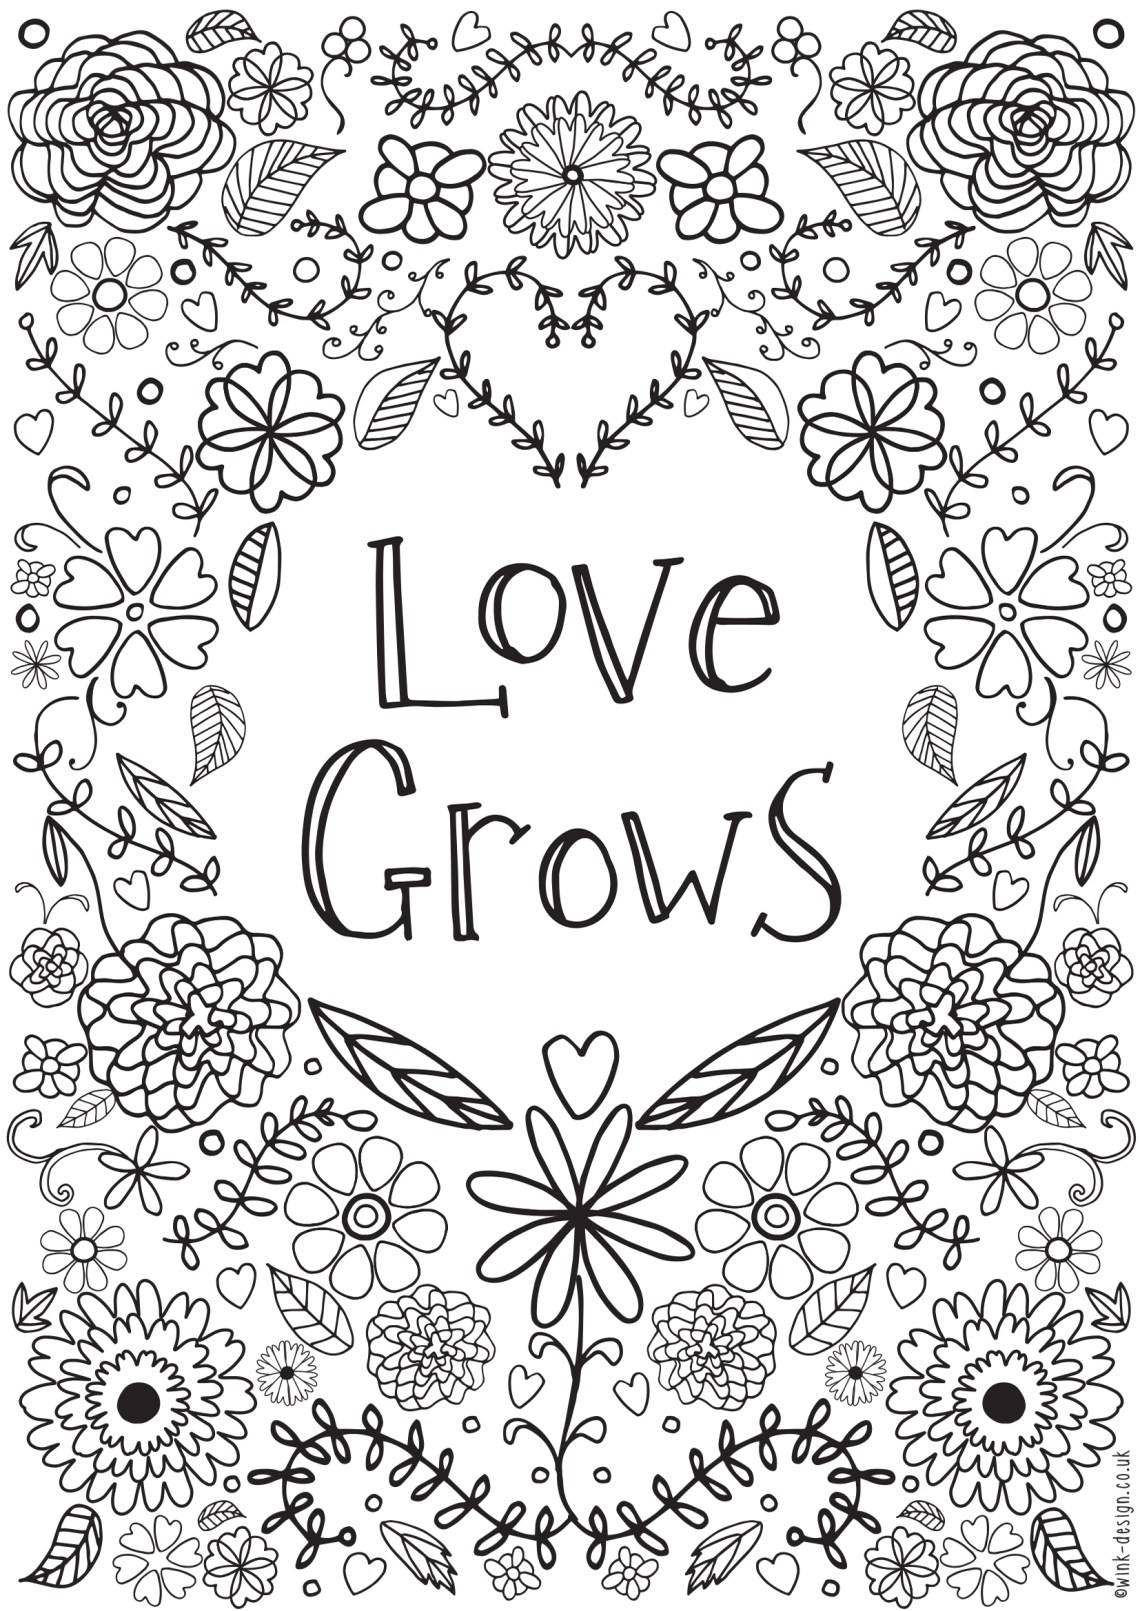 Free printable adult colouring pages for the New Year ... | free printable coloring pages for adults funny